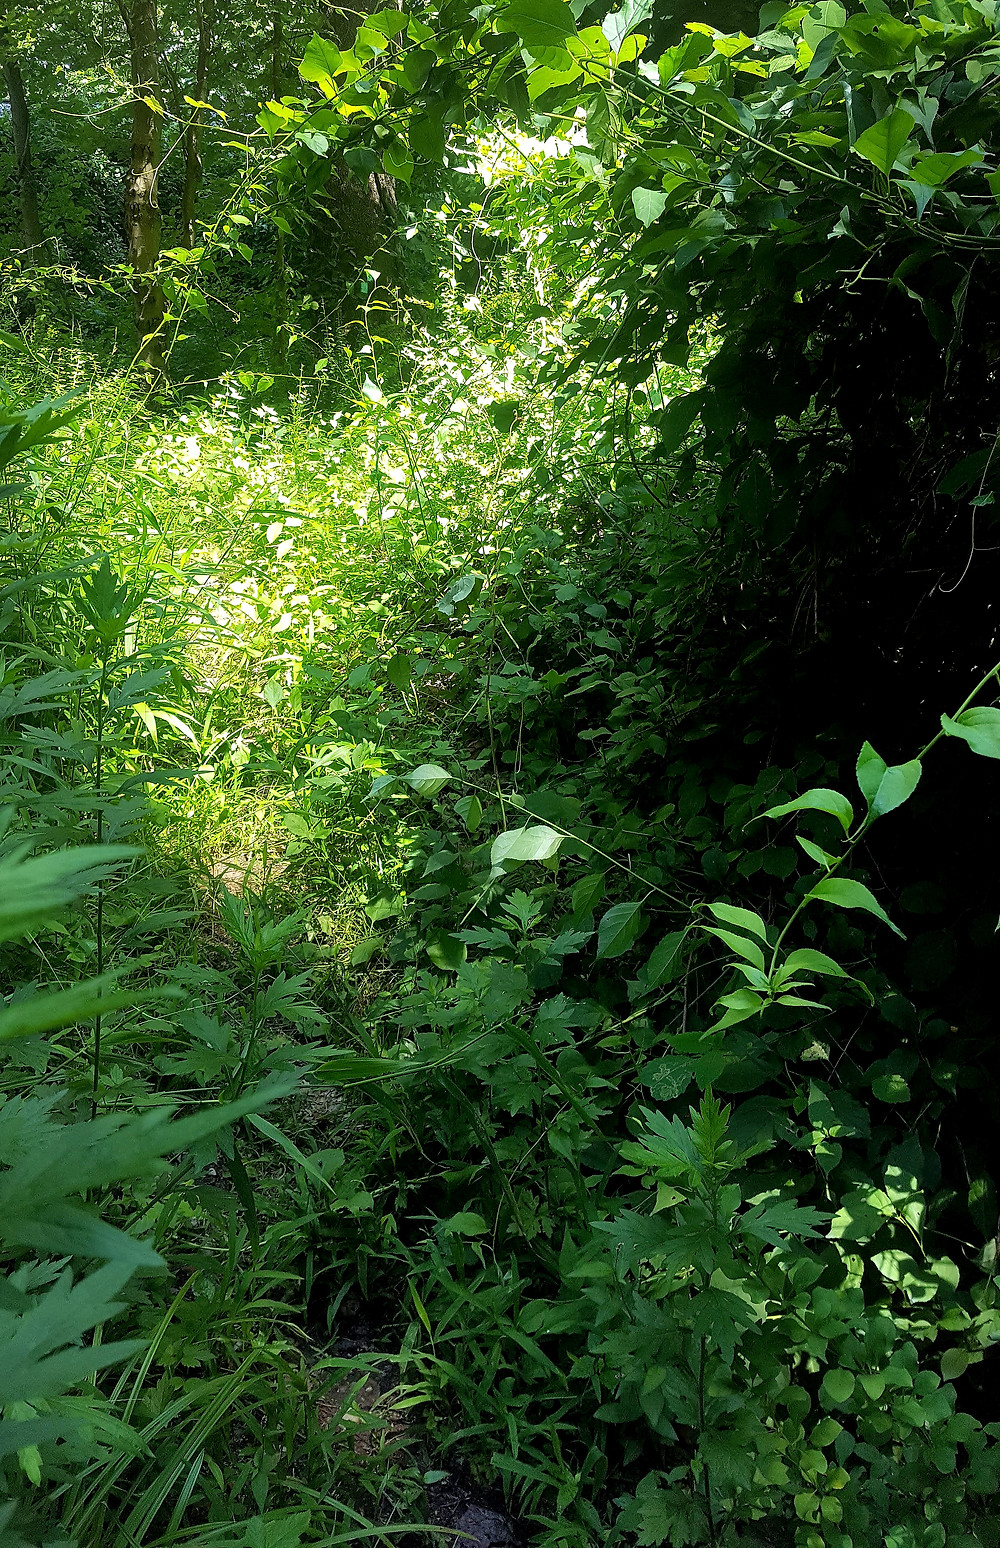 Intense overgrowth on the Long Path